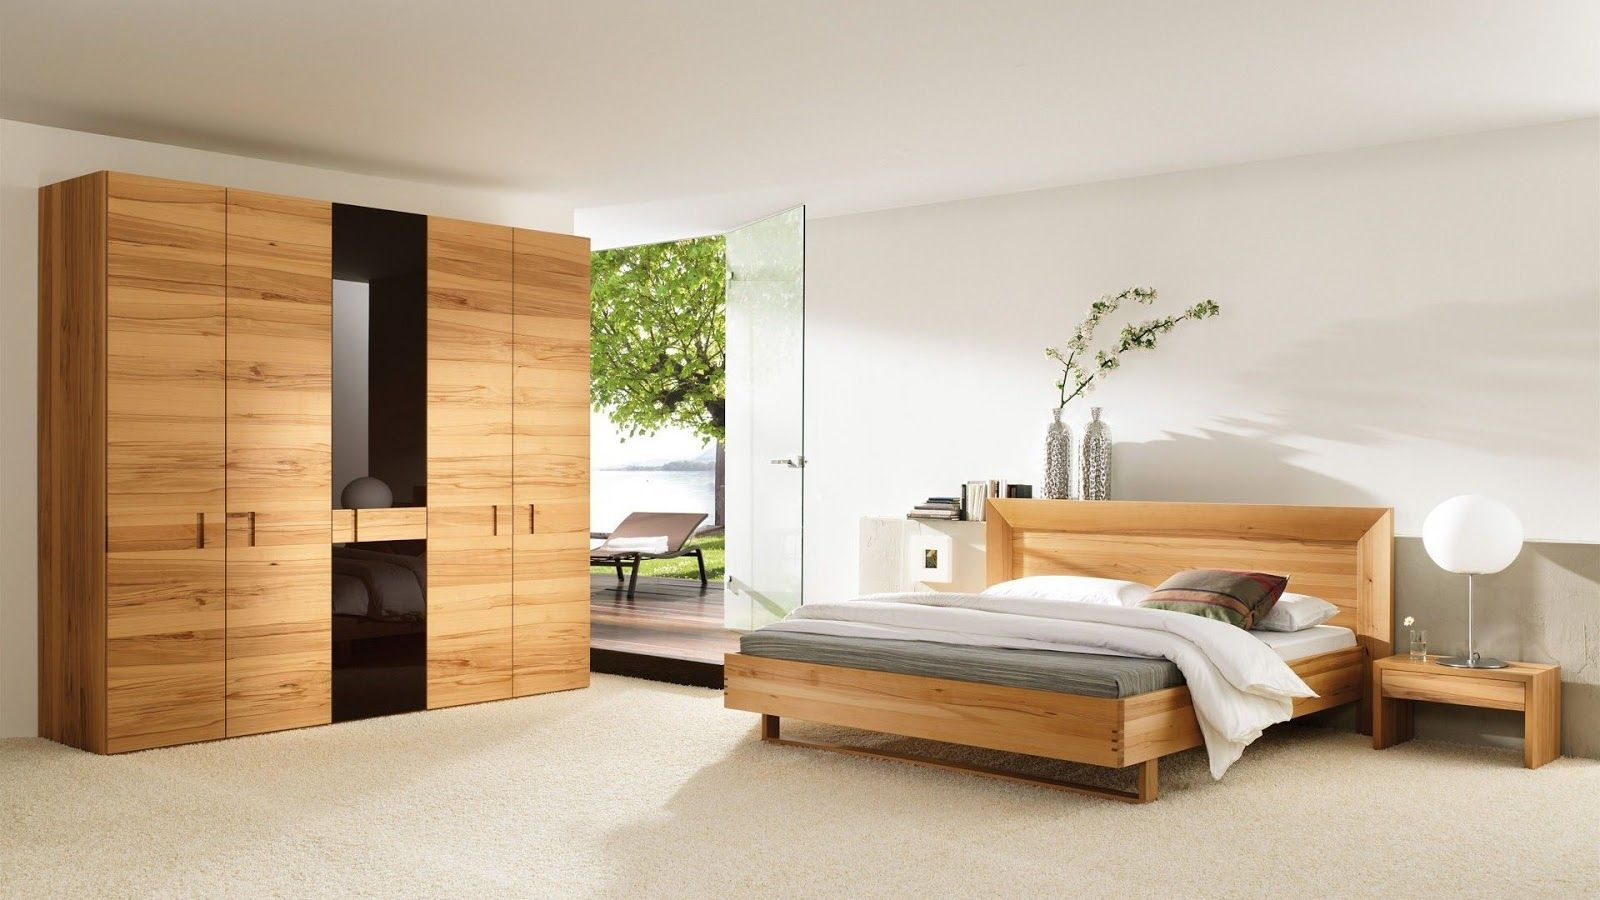 Simple bedroom furniture - Simple Bedroom Design